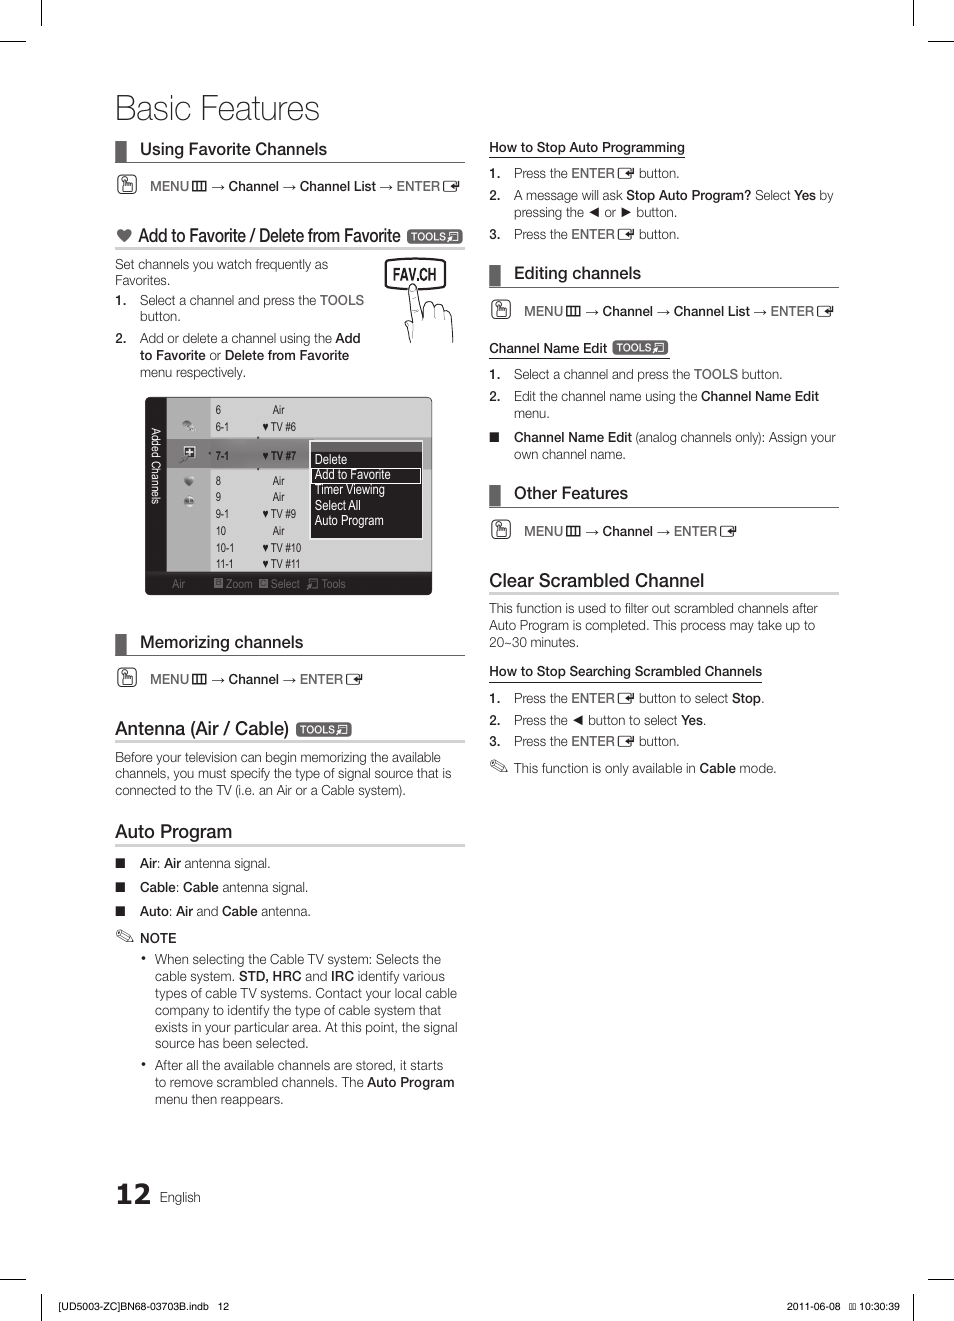 Basic features, Add to favorite / delete from favorite, Antenna (air /  cable) | Samsung LN32D403E2DXZA Manuel d'utilisation | Page 12 / 71